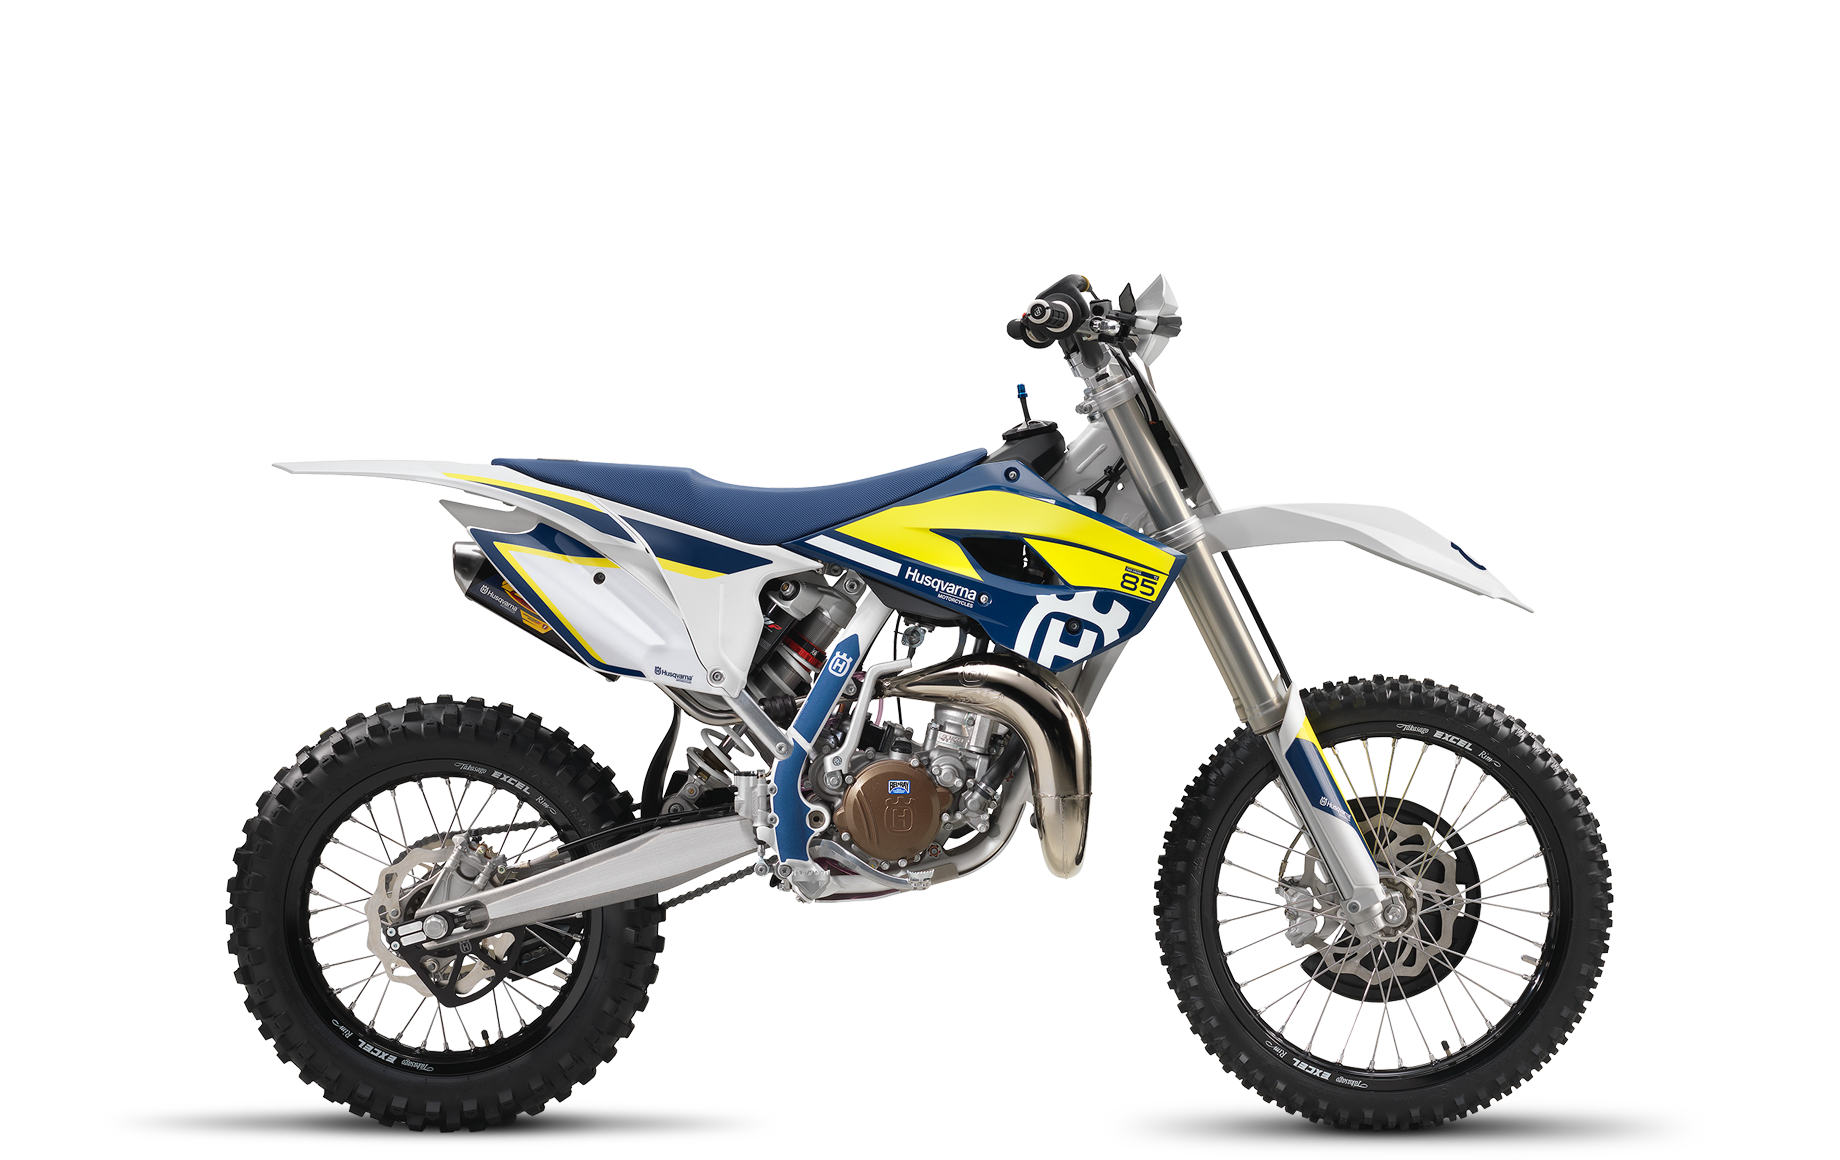 Husqvarna 85 TC 2017 supermotard